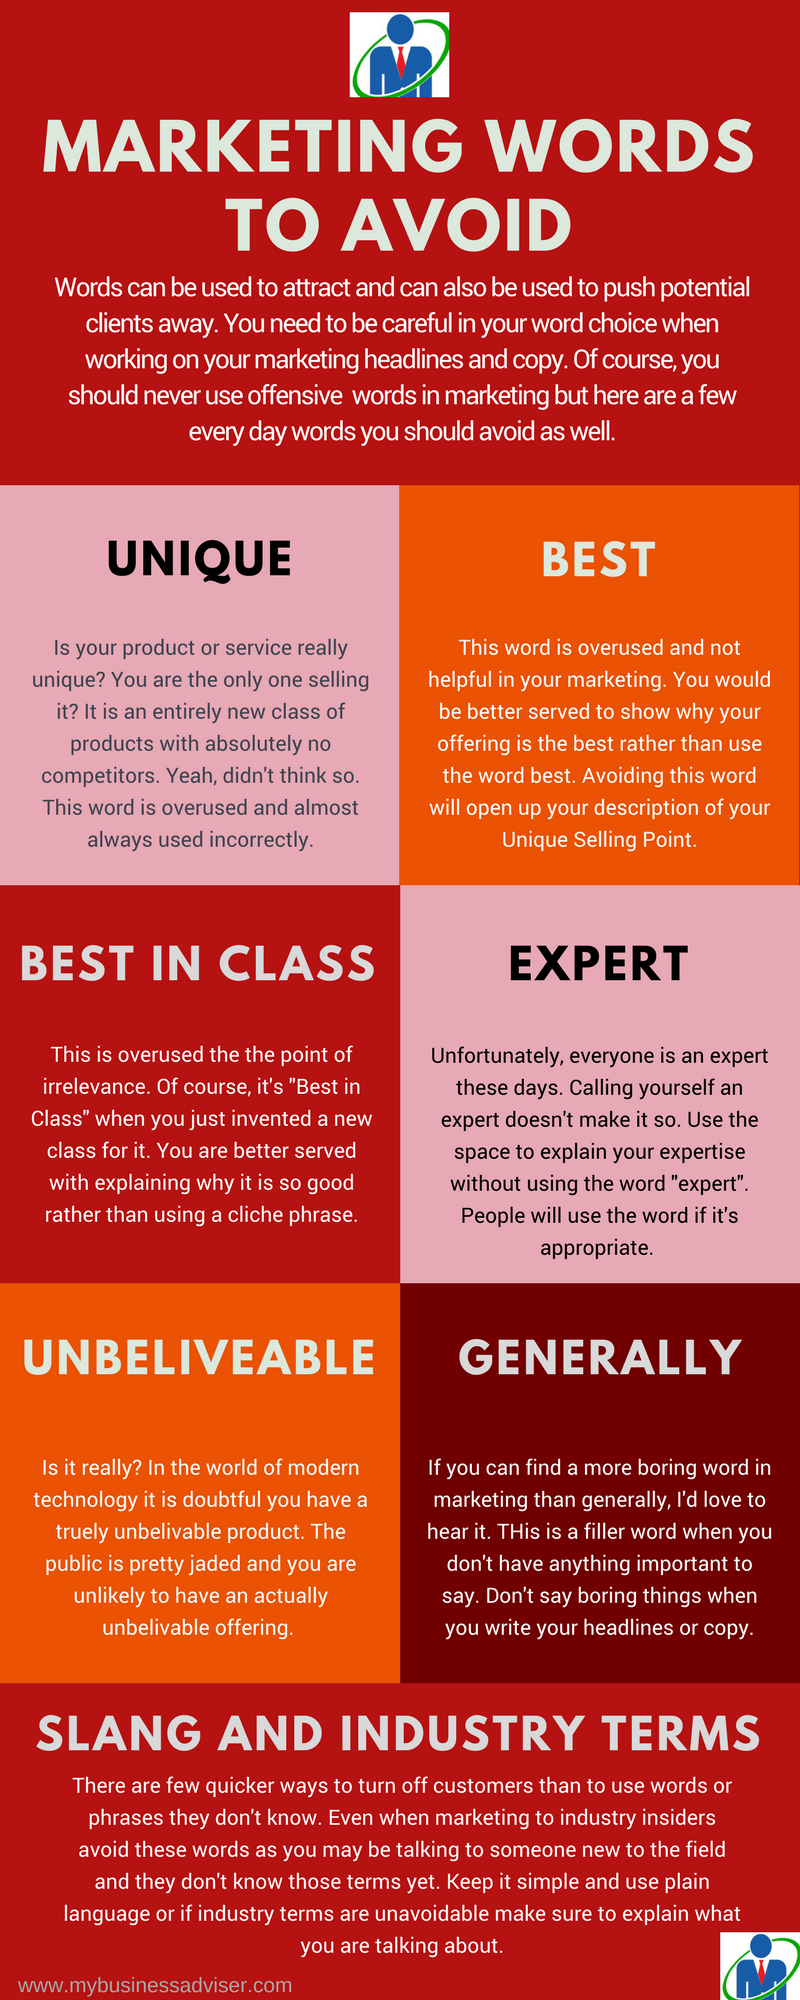 Marketing Words to Avoid.png